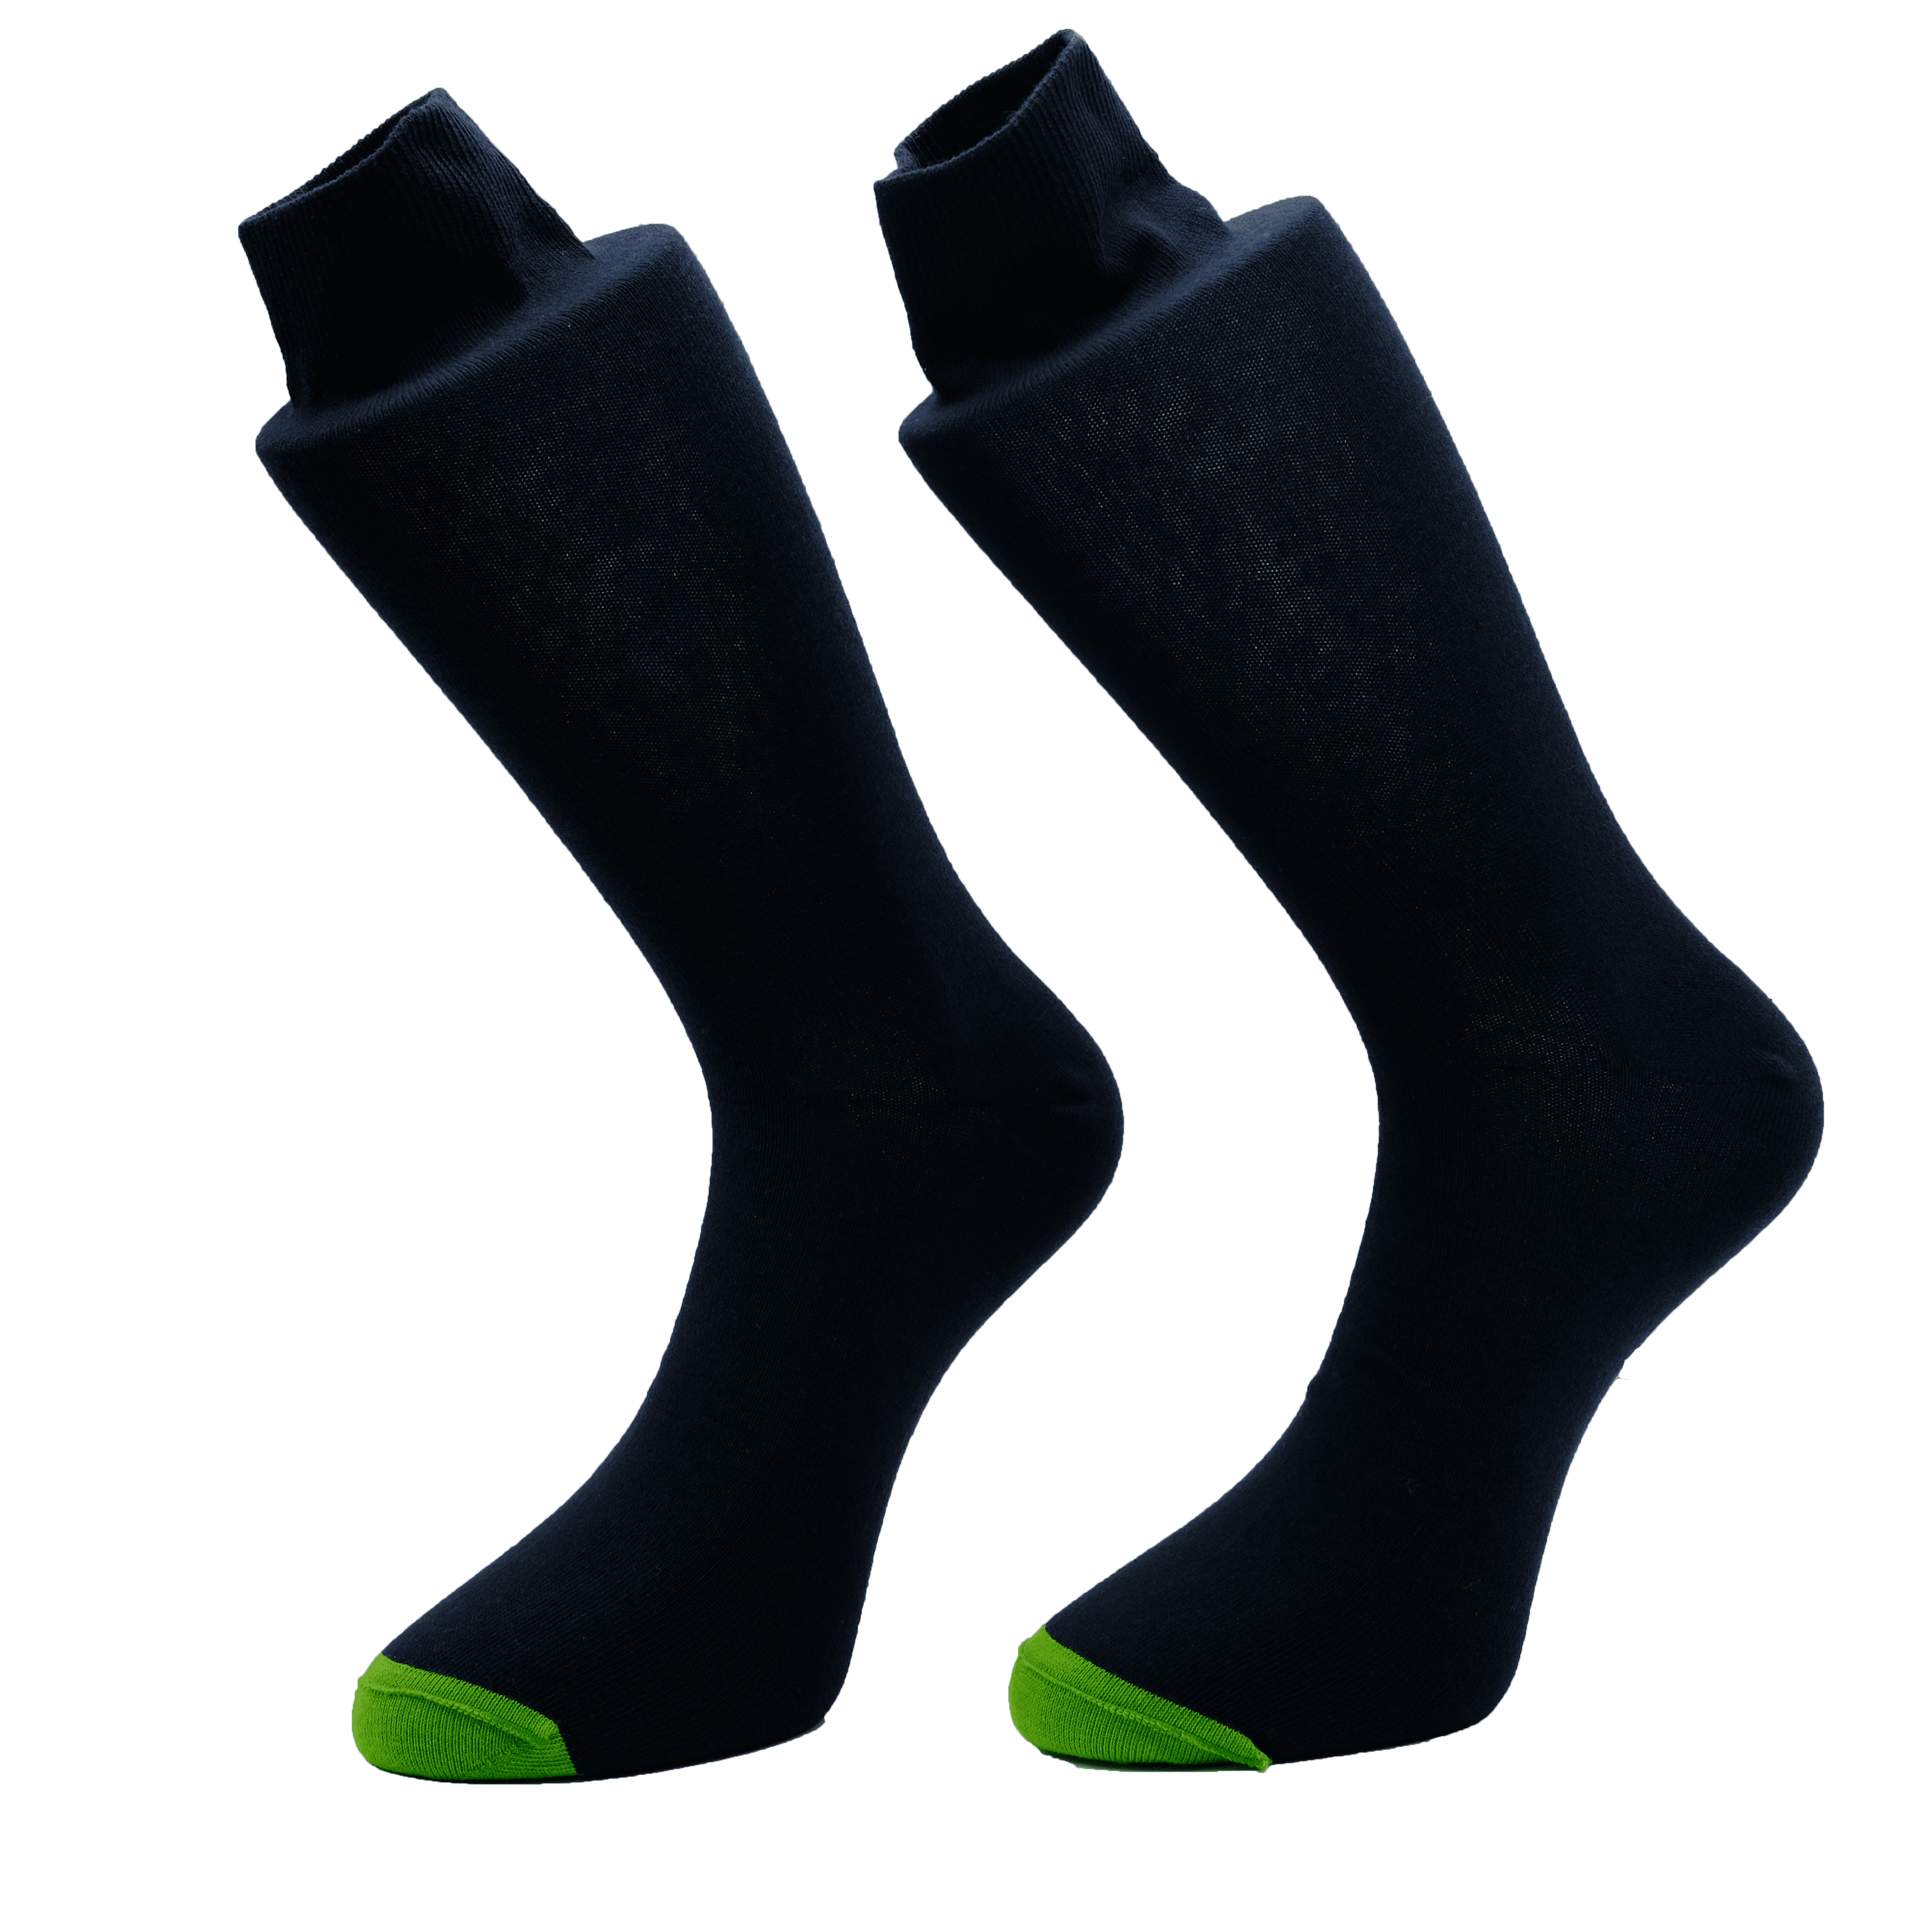 Business socks tailor made